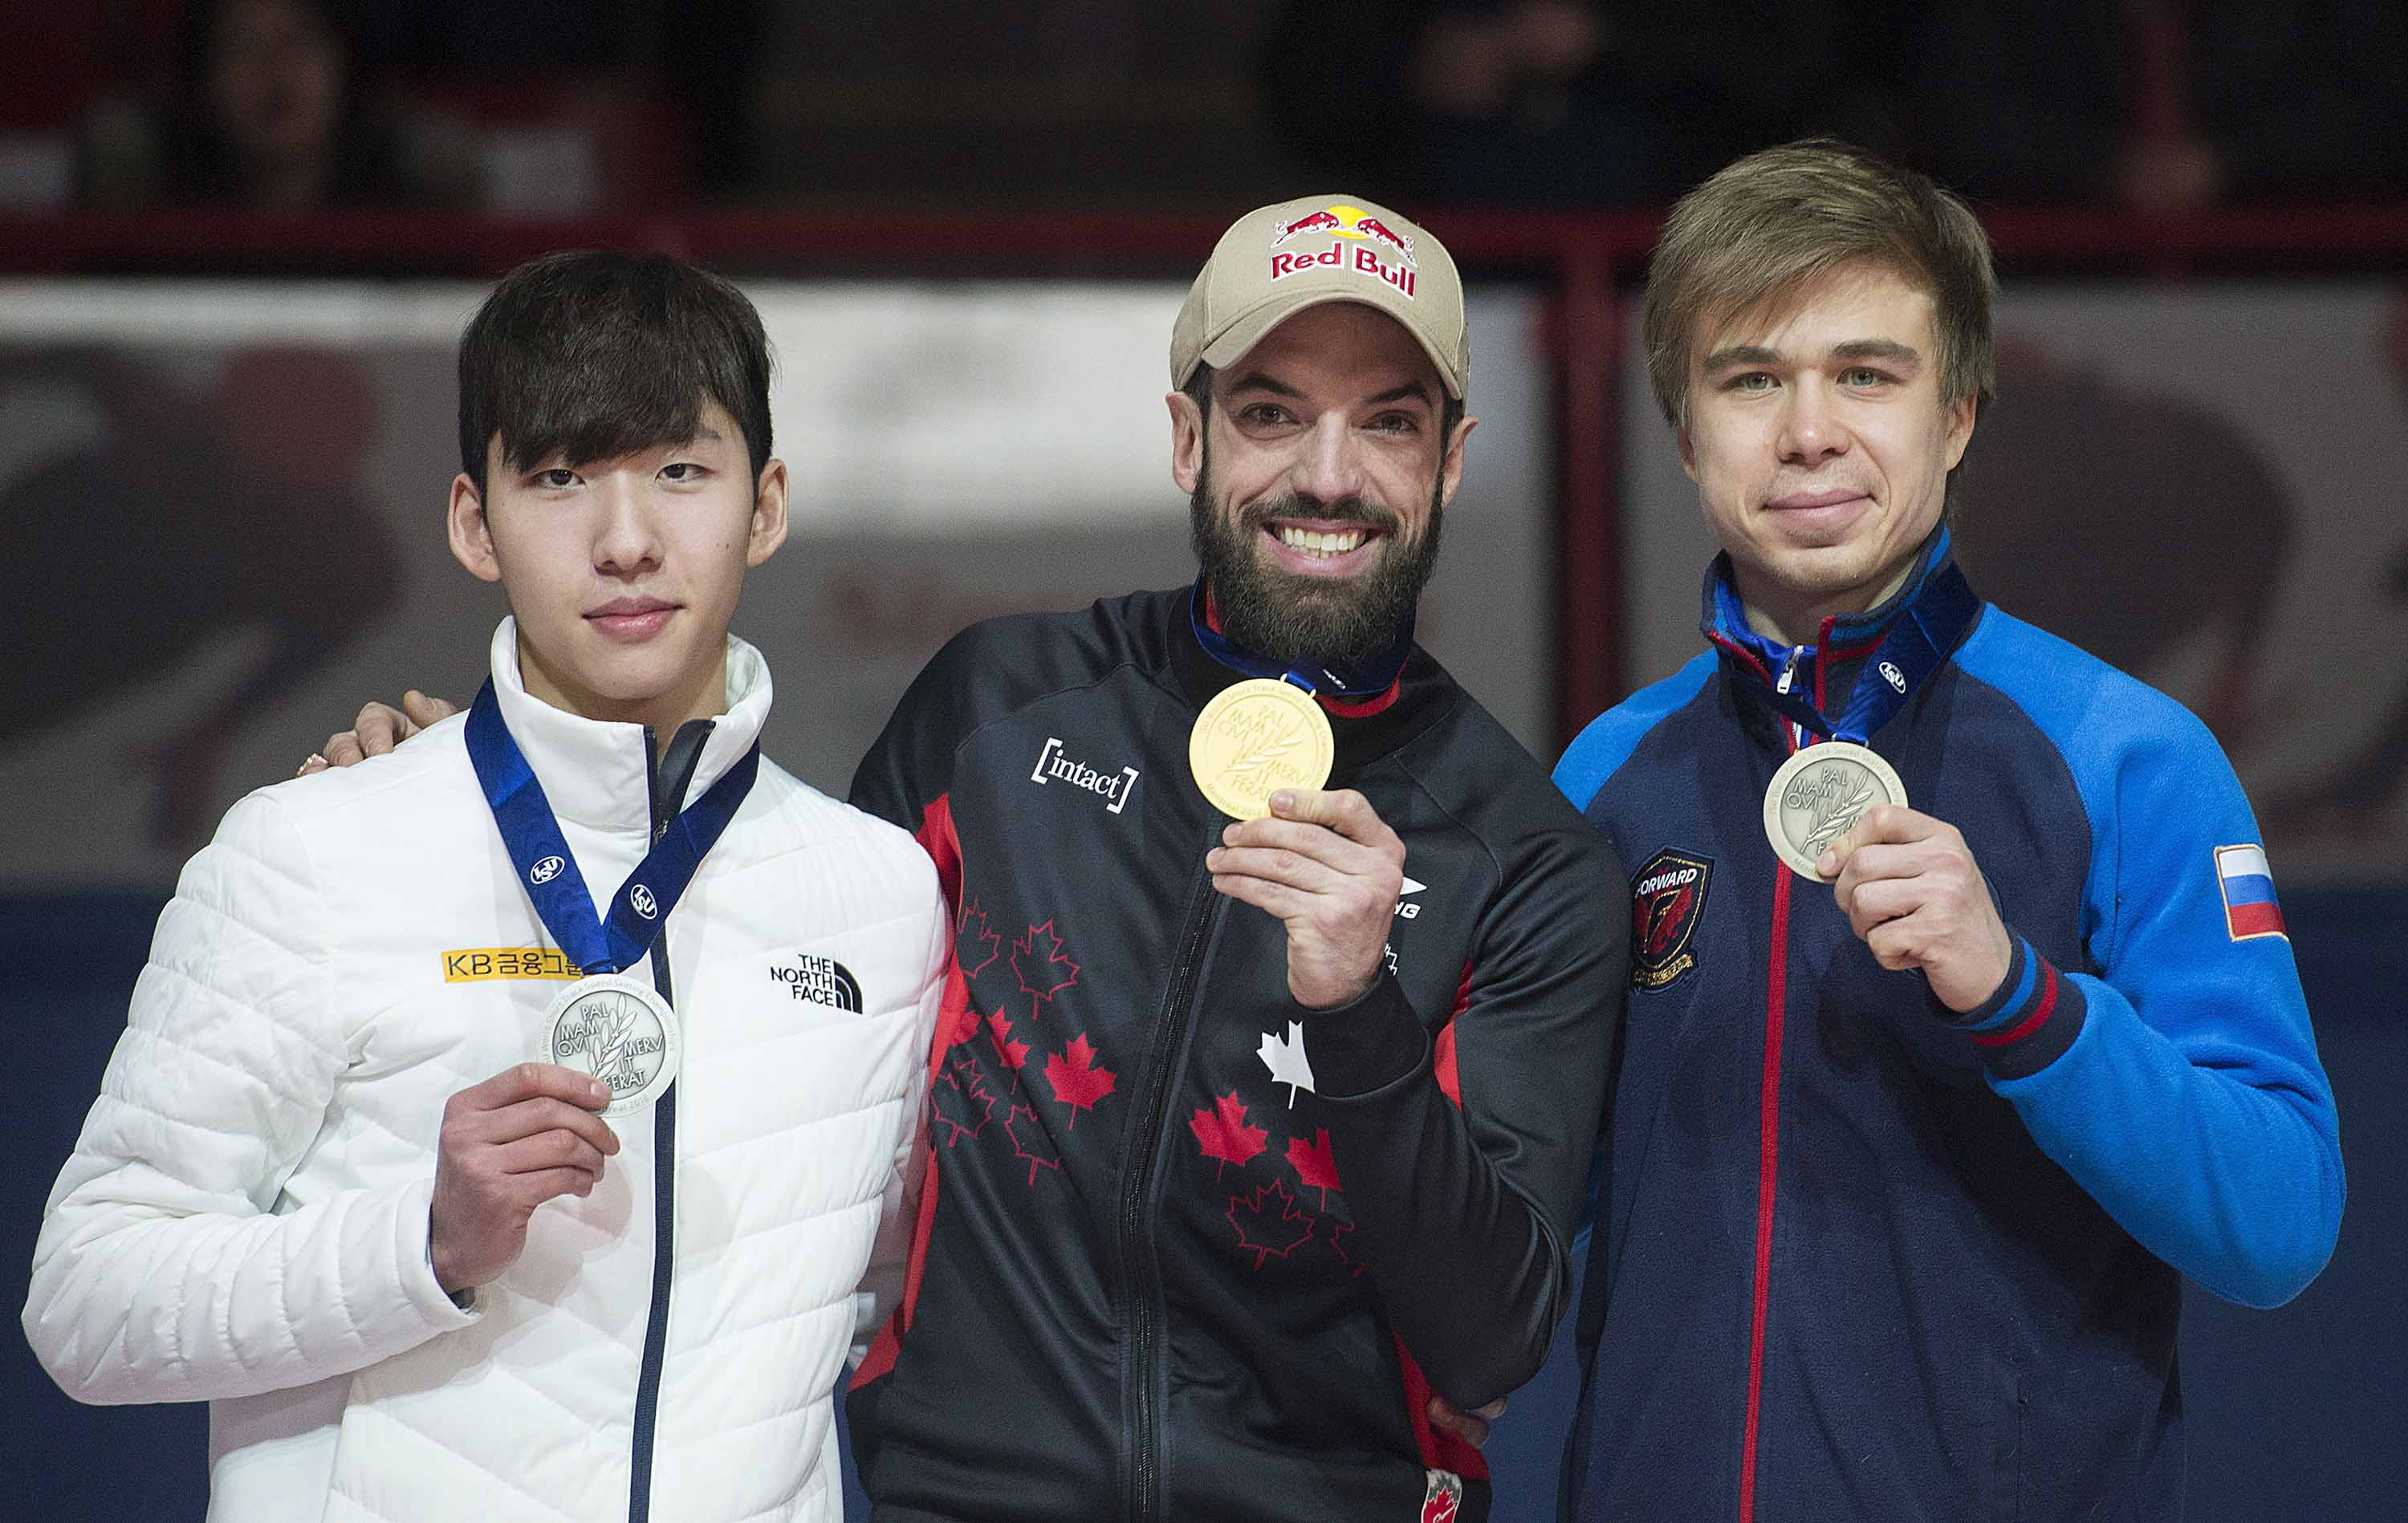 From left :  Lim Hyo-jun of South Korea (silver), Charles Hamelin of Canada (gold) and Semion Elistratov of Russia (bronze) hold up their medals following the men's 1,500 meters at the ISU world short-track speedskating championships in Montreal on Saturday.